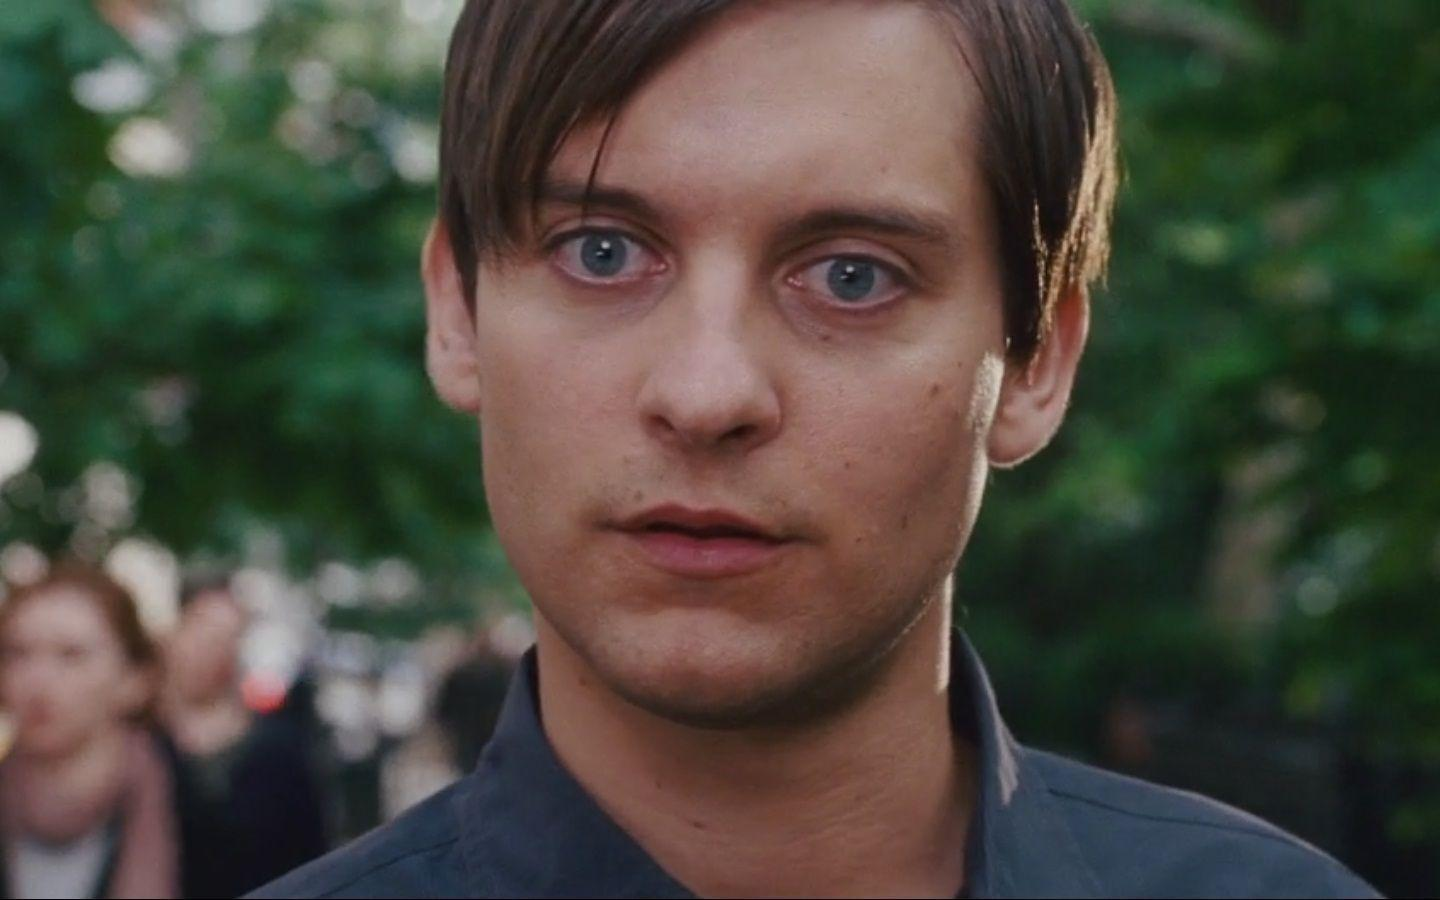 Fonds d&Tobey Maguire : tous les wallpapers Tobey Maguire